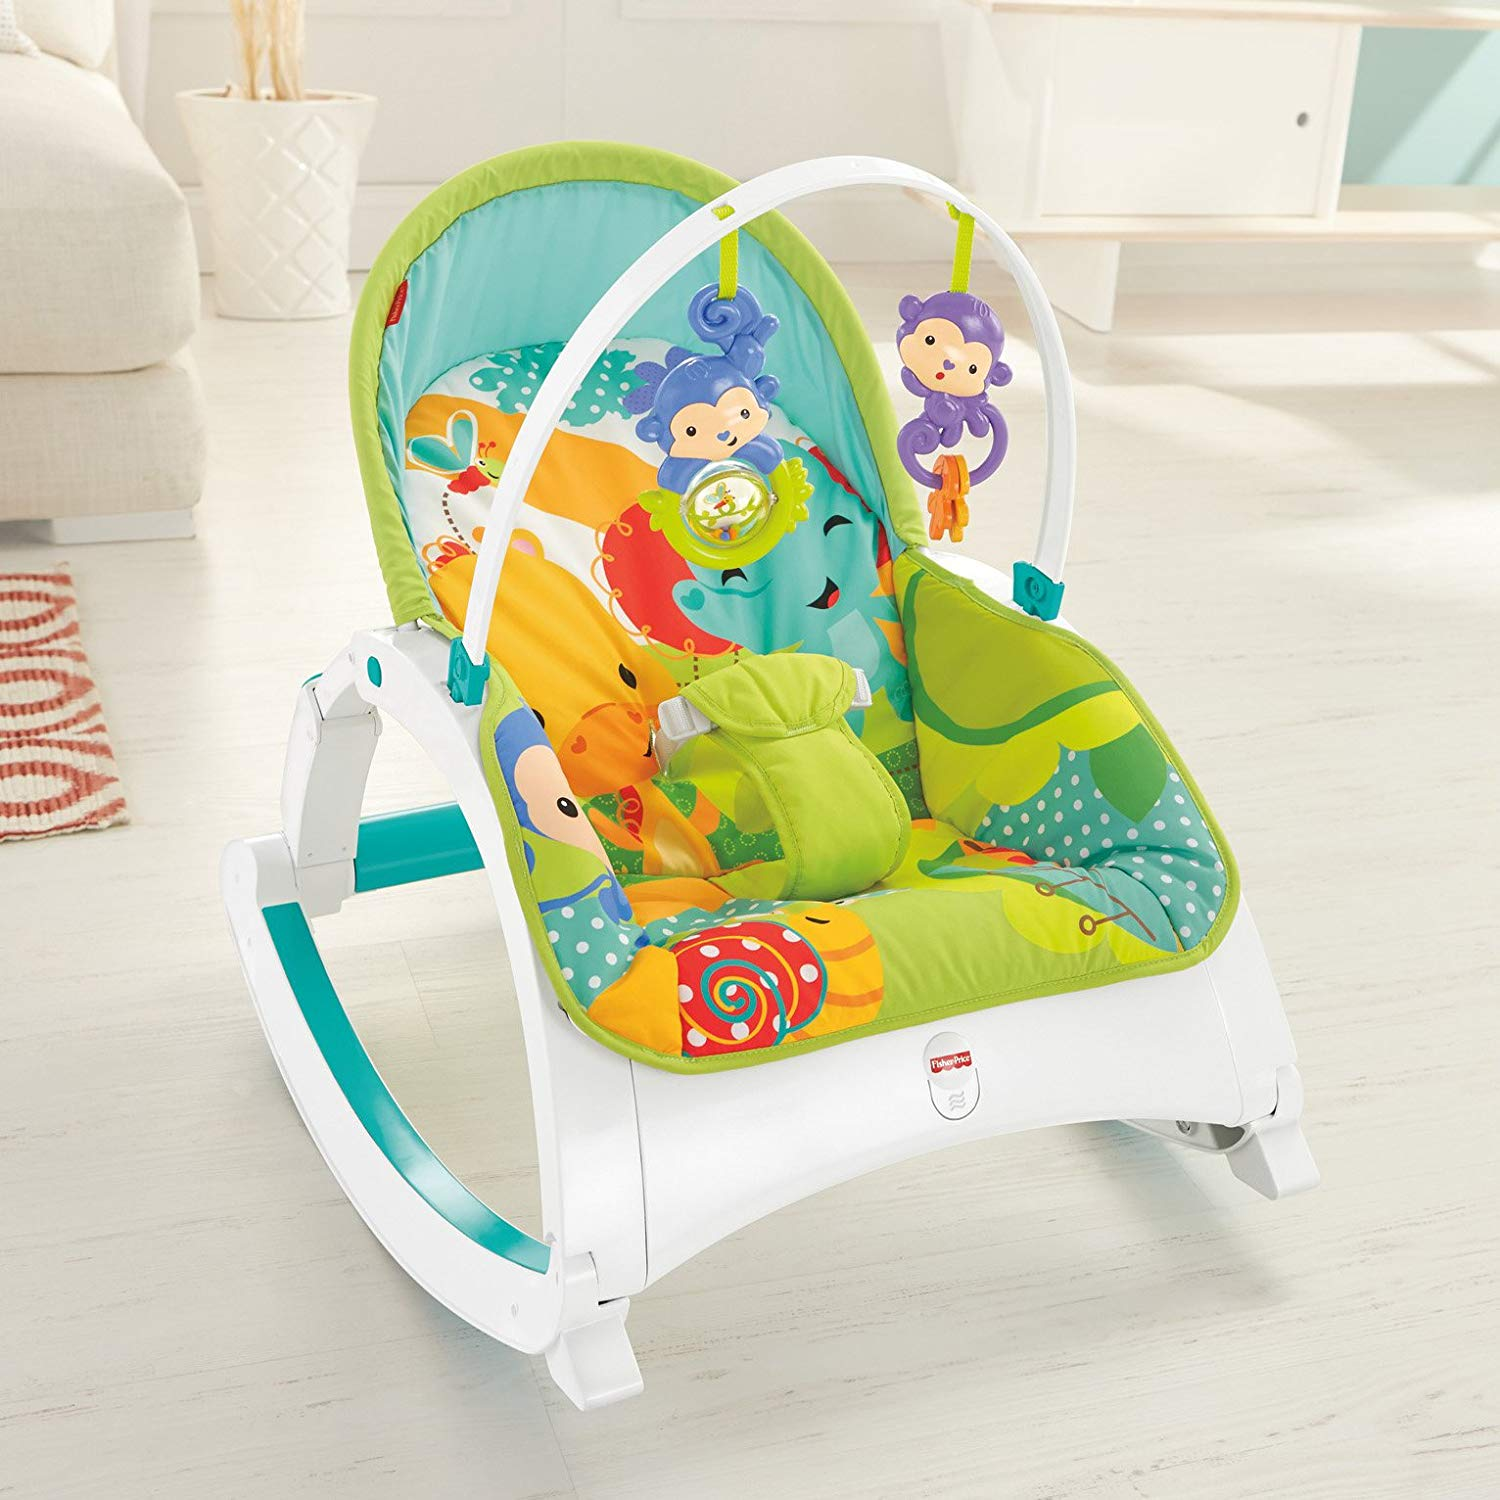 Fisher-Price Newborn-to-Toddler Portable Rocker $35.54 (35% off) on Amazon for Prime Members